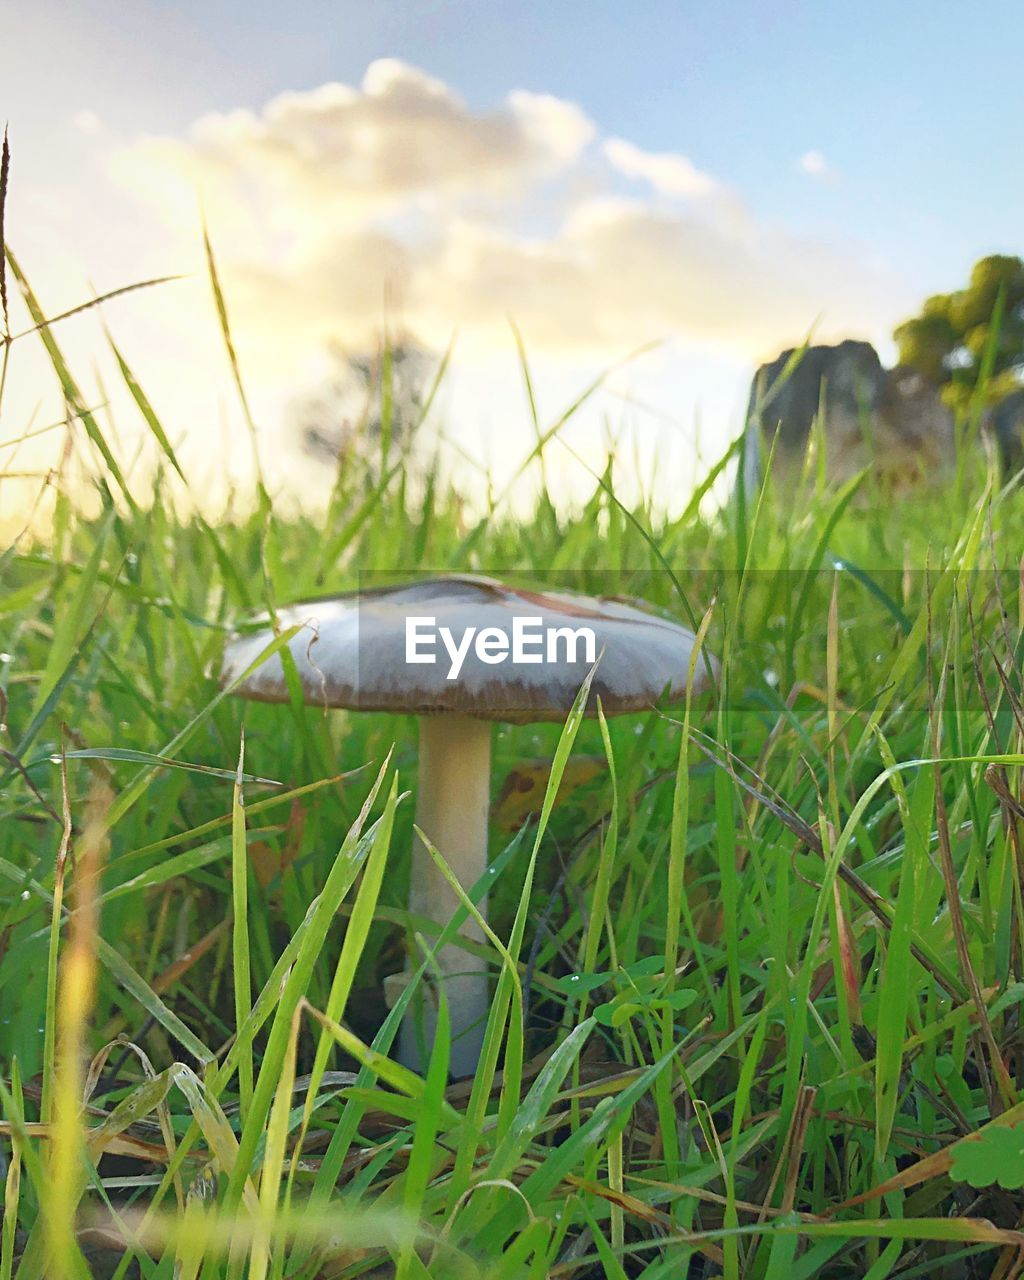 plant, growth, mushroom, vegetable, fungus, grass, land, food, nature, field, green color, beauty in nature, close-up, focus on foreground, day, no people, toadstool, freshness, sky, outdoors, blade of grass, surface level